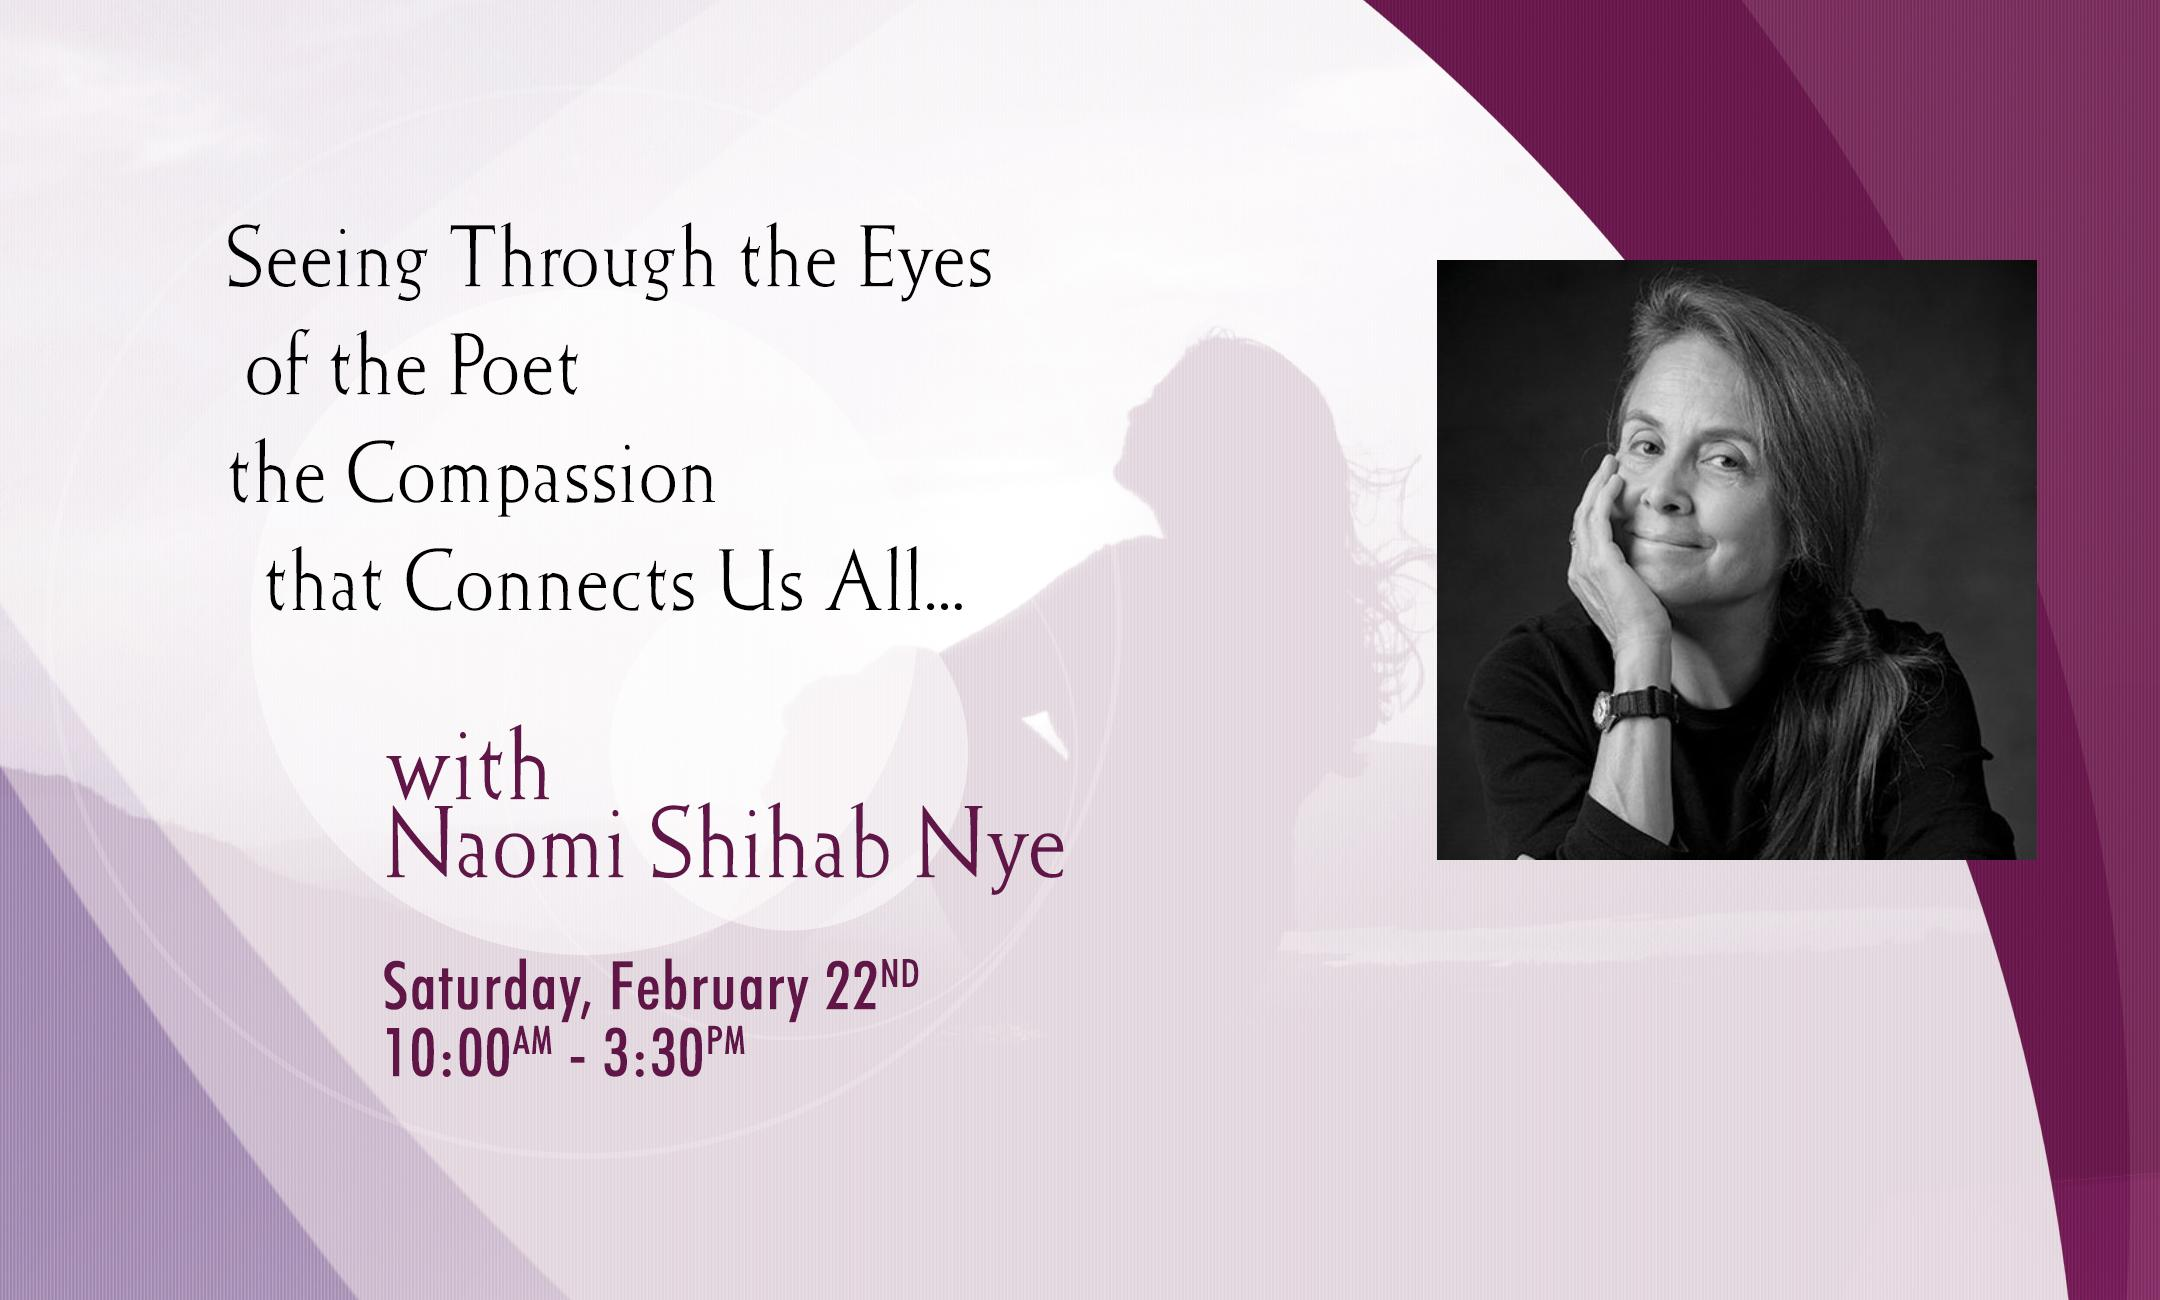 Awakening to Compassion for Self and Others - Join Poet Naomi Shihab Nye